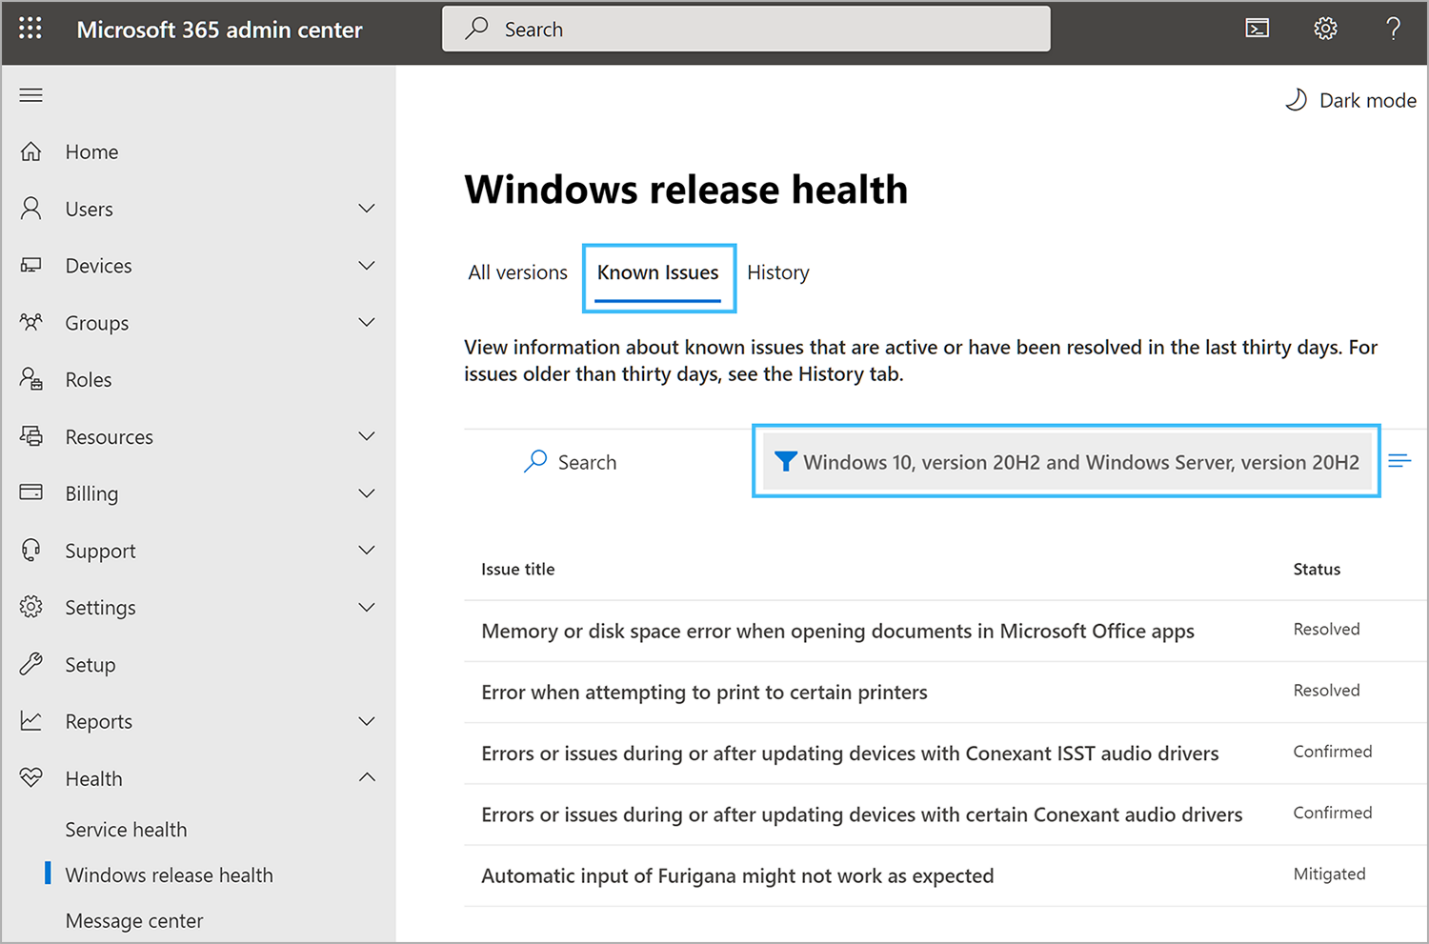 windows-release-health2.png